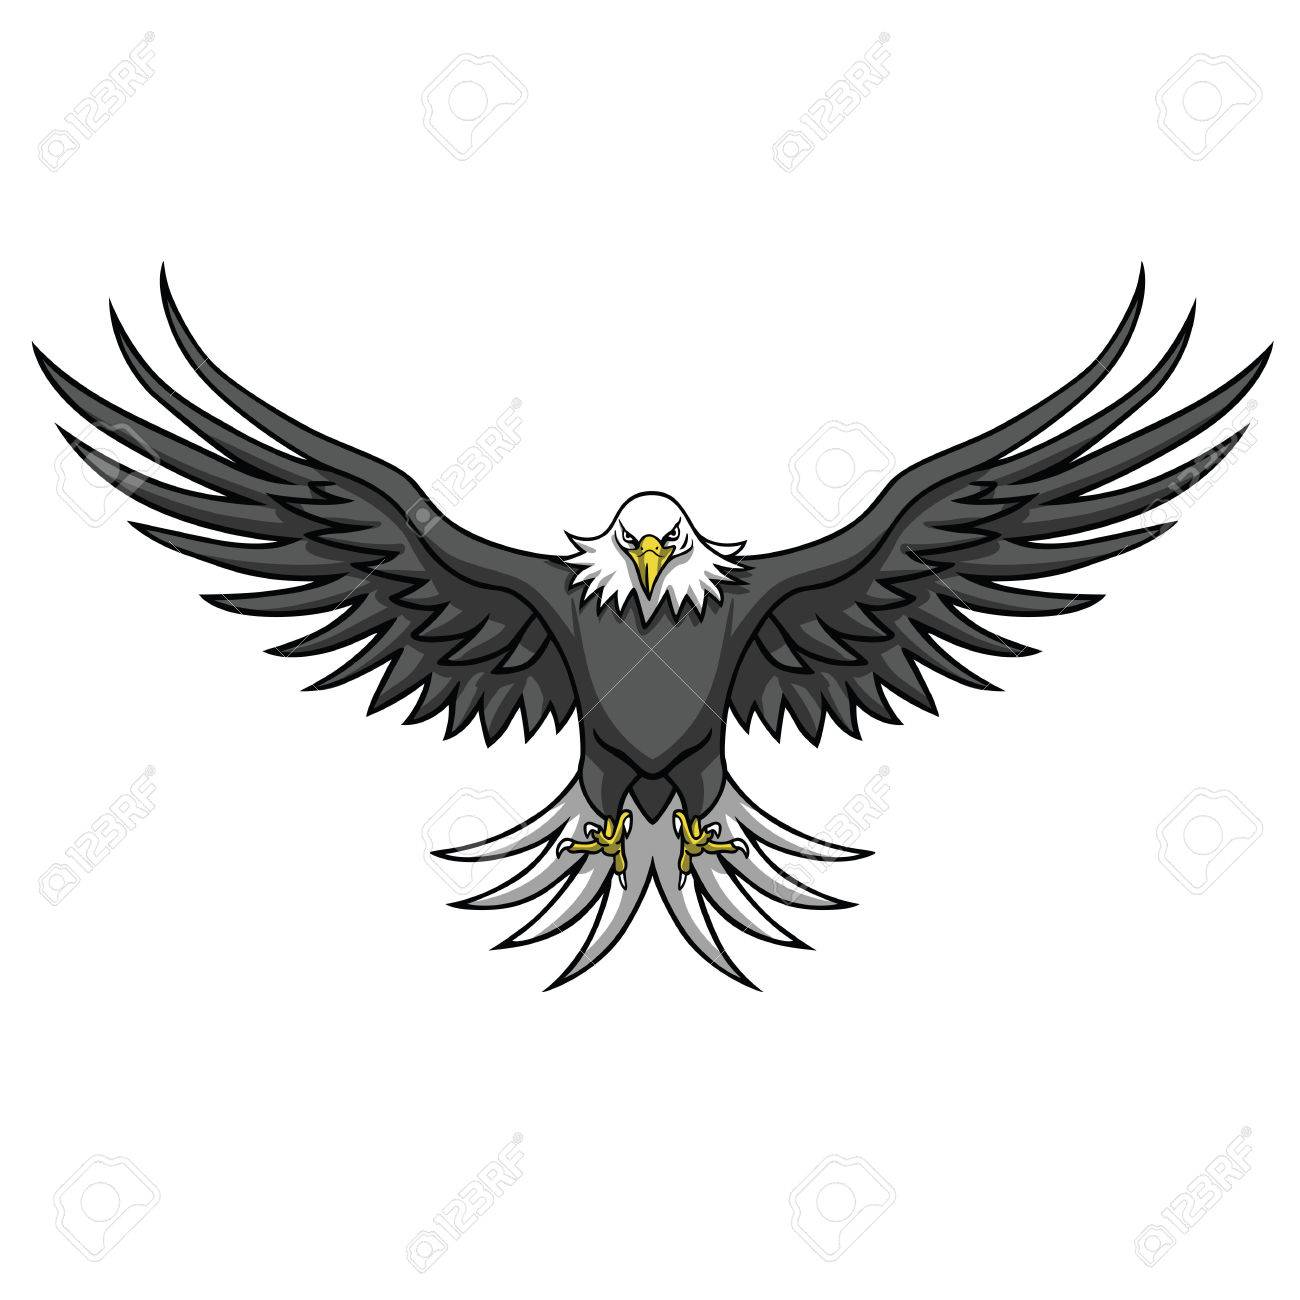 eagle mascot spread the wings vector illustration royalty free rh 123rf com vector eagle images free vector eagle free